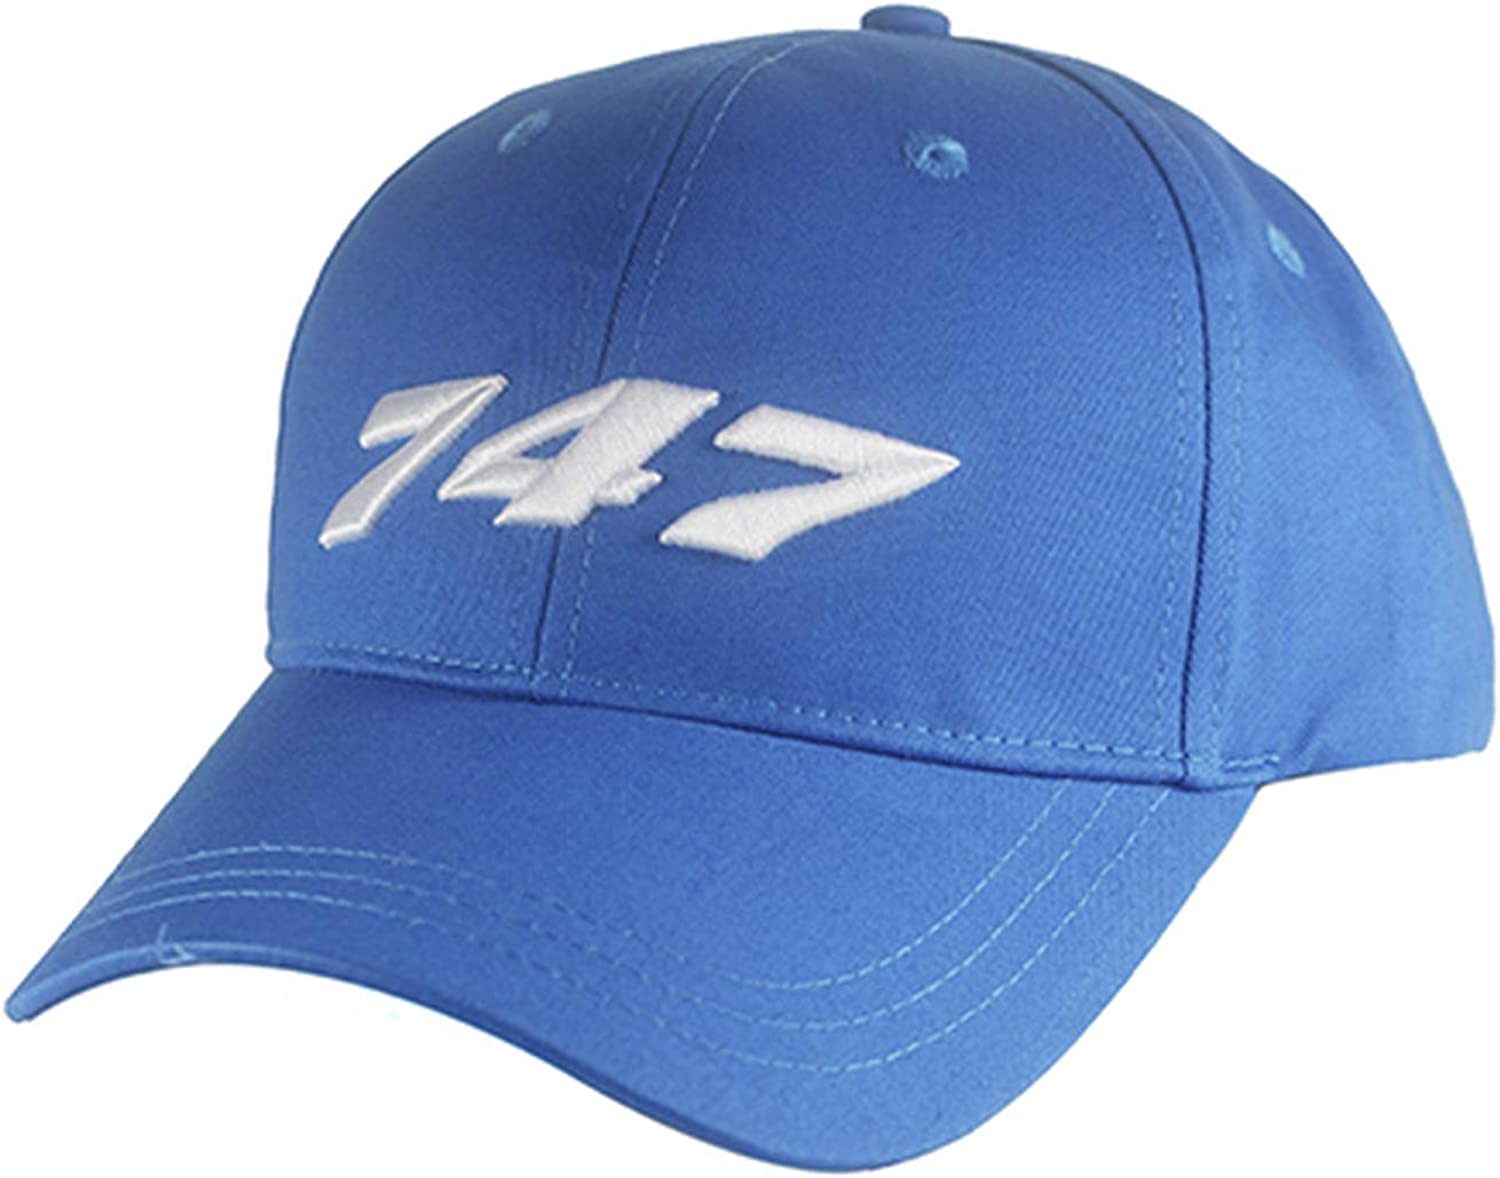 Boeing Hat Outdoor Baseball Cap Adjustable for Pilot Aviation Gift Flight Crew Hats